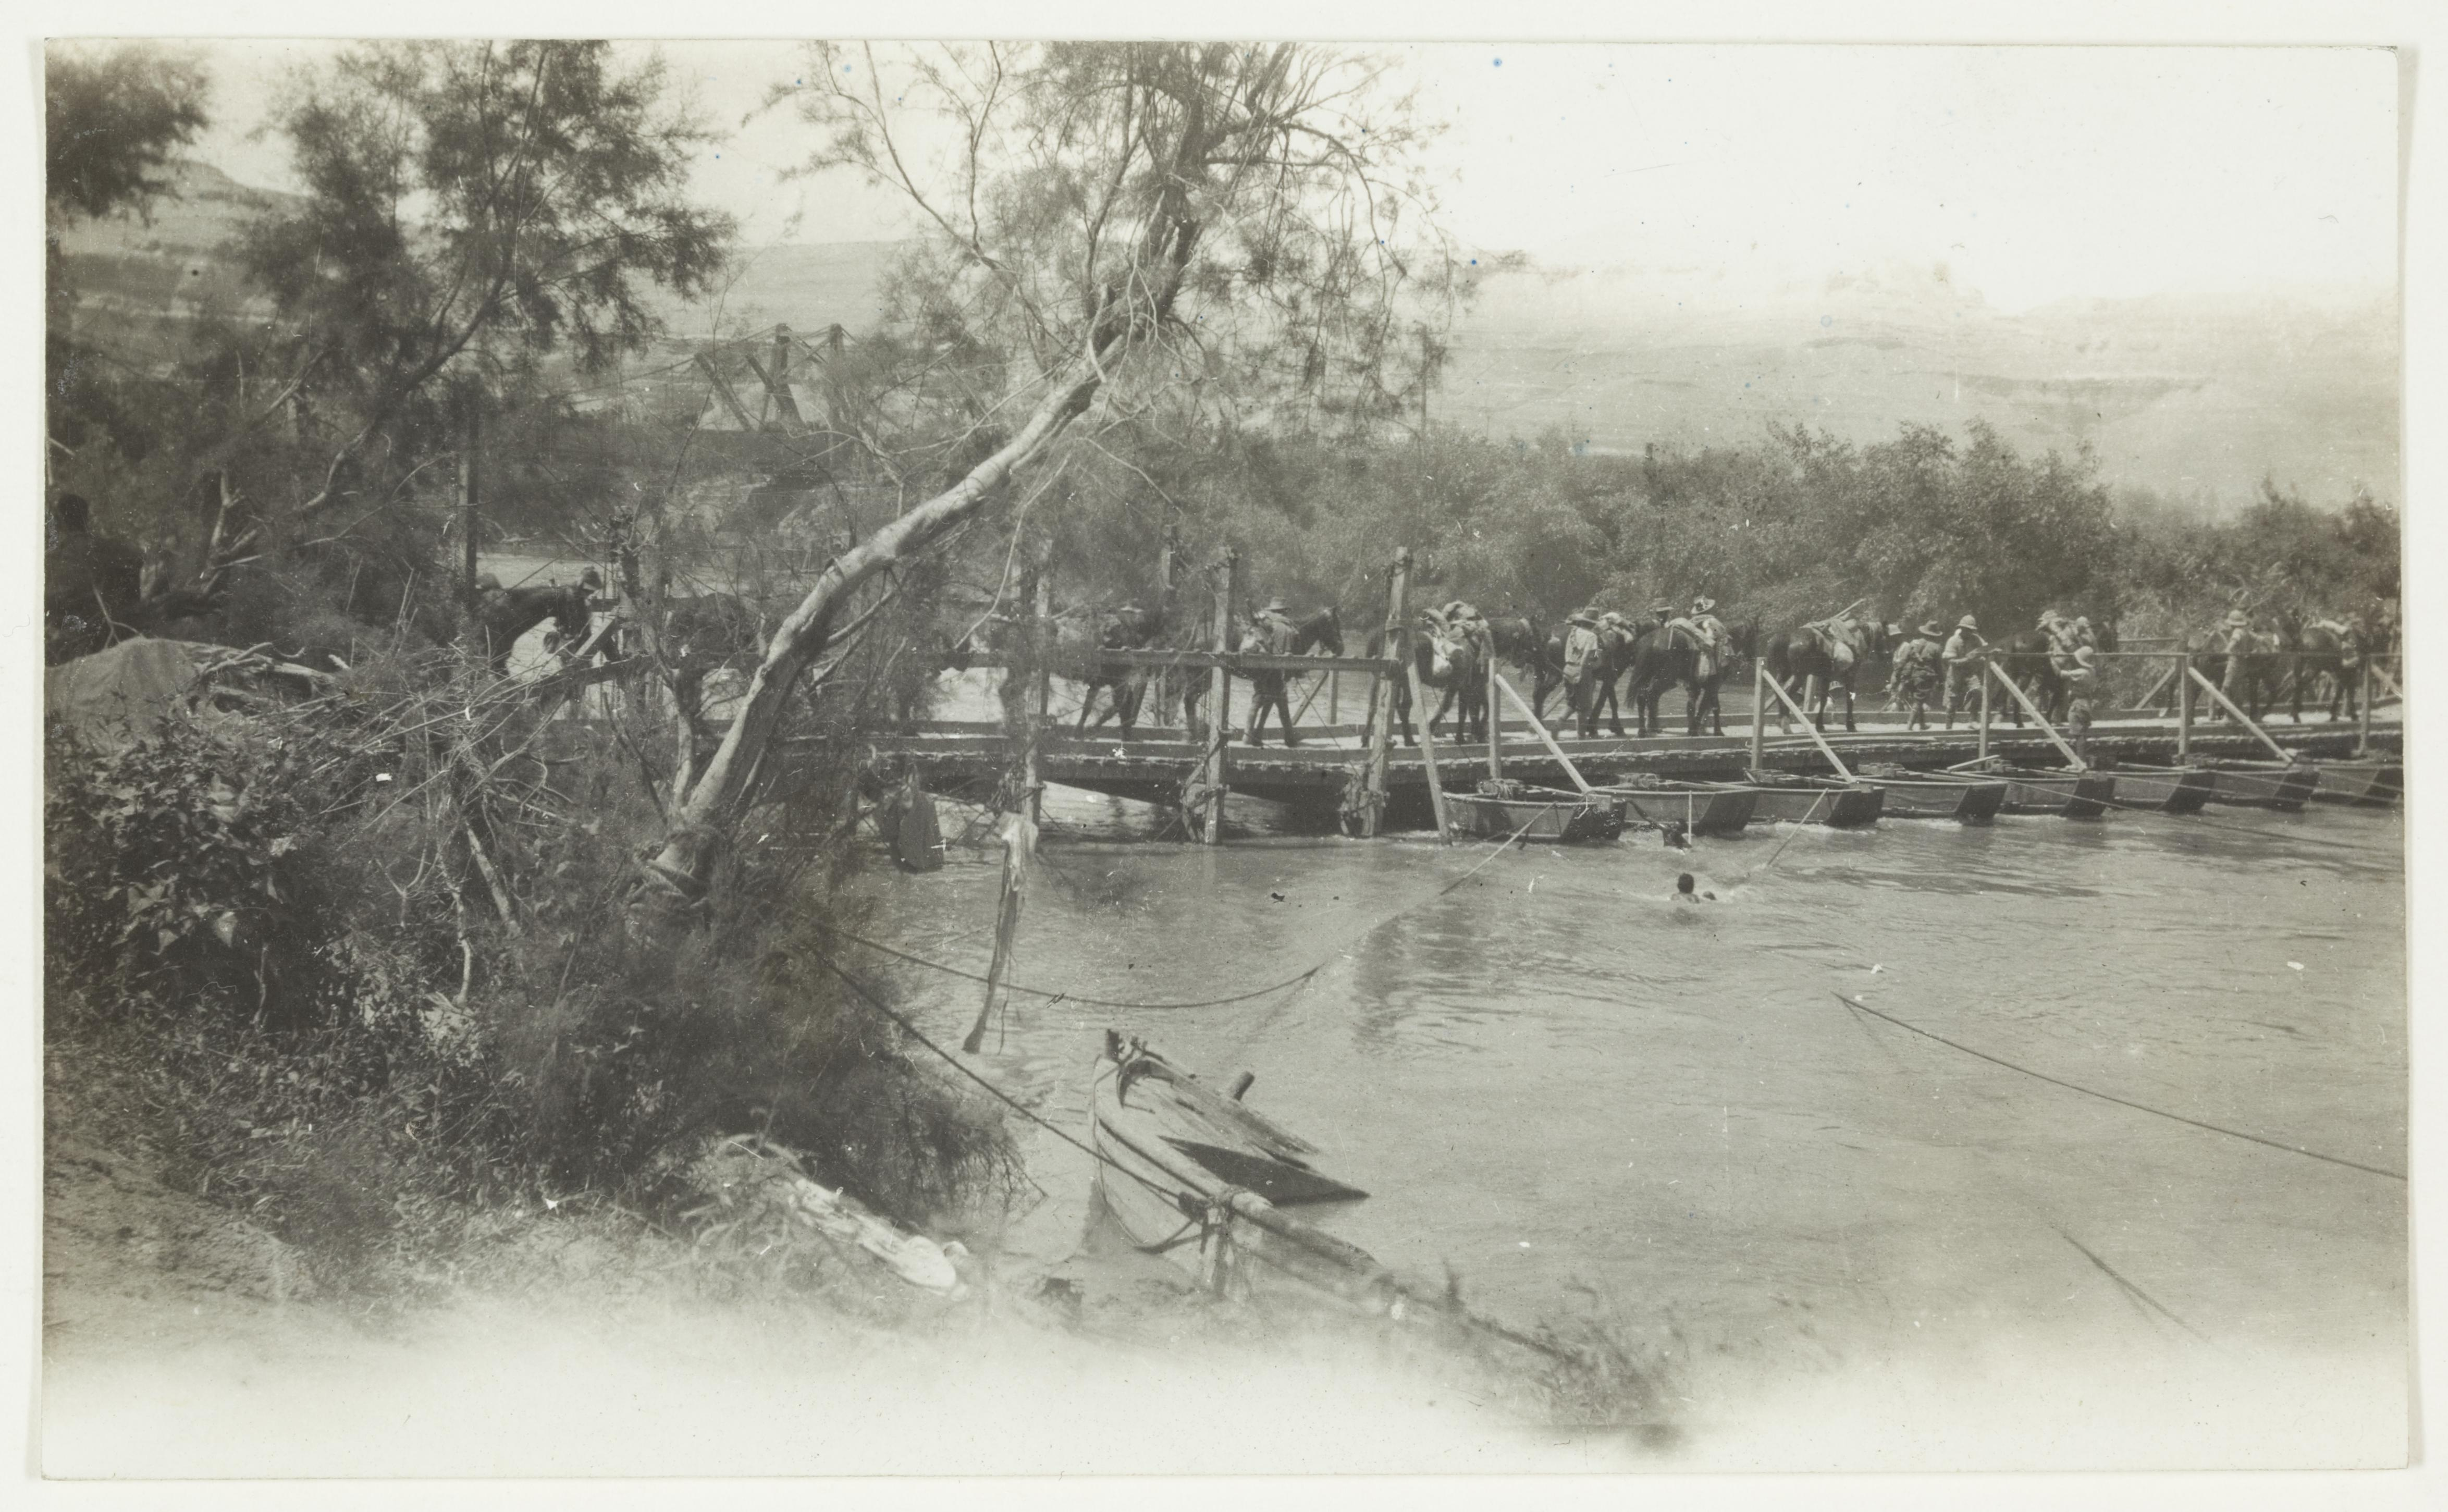 2nd Brigade crossing Jordan River, 2/5/1918  by J.F. Smith of the 7th Light Horse in Egypt and Palestine, c. 1914-1918